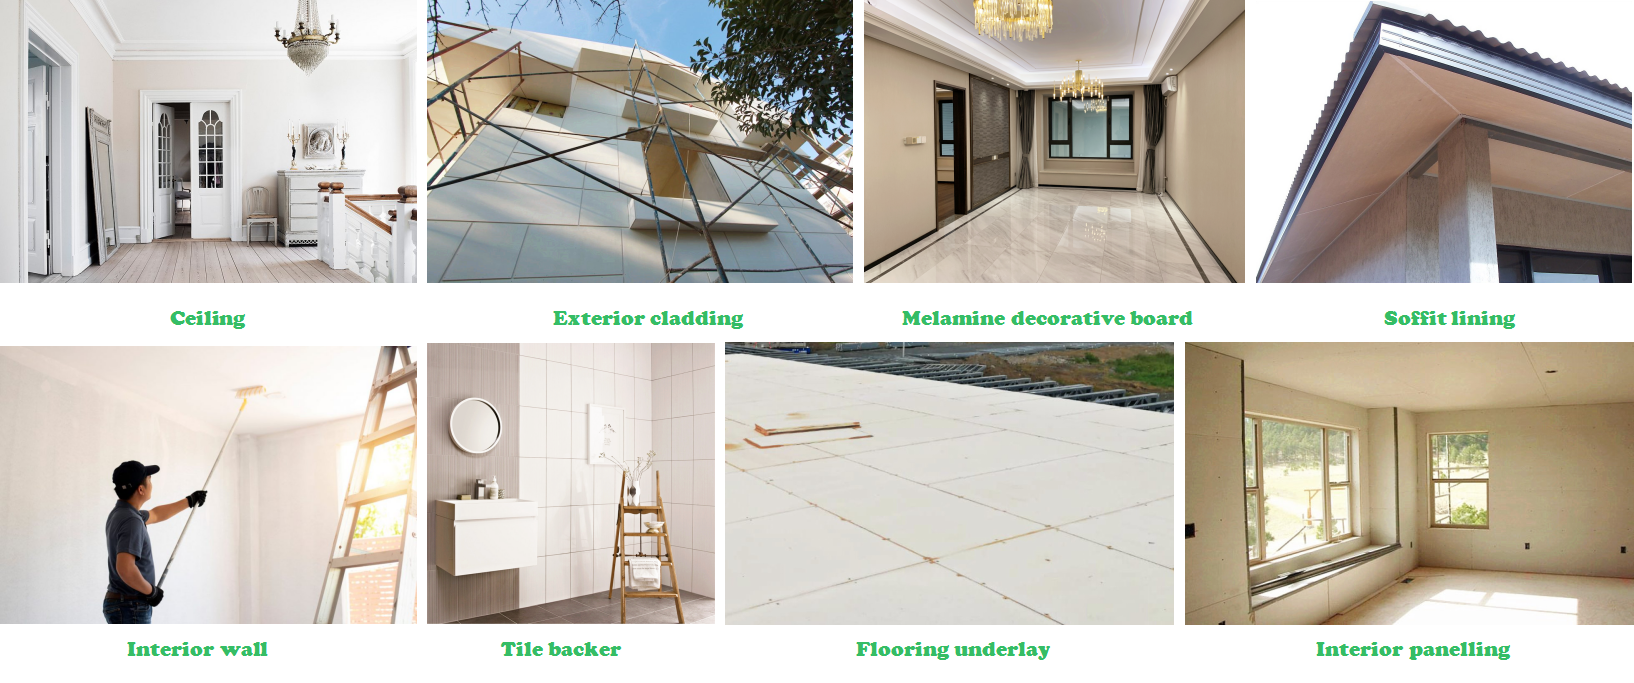 non-combustible melamine laminated ceilings